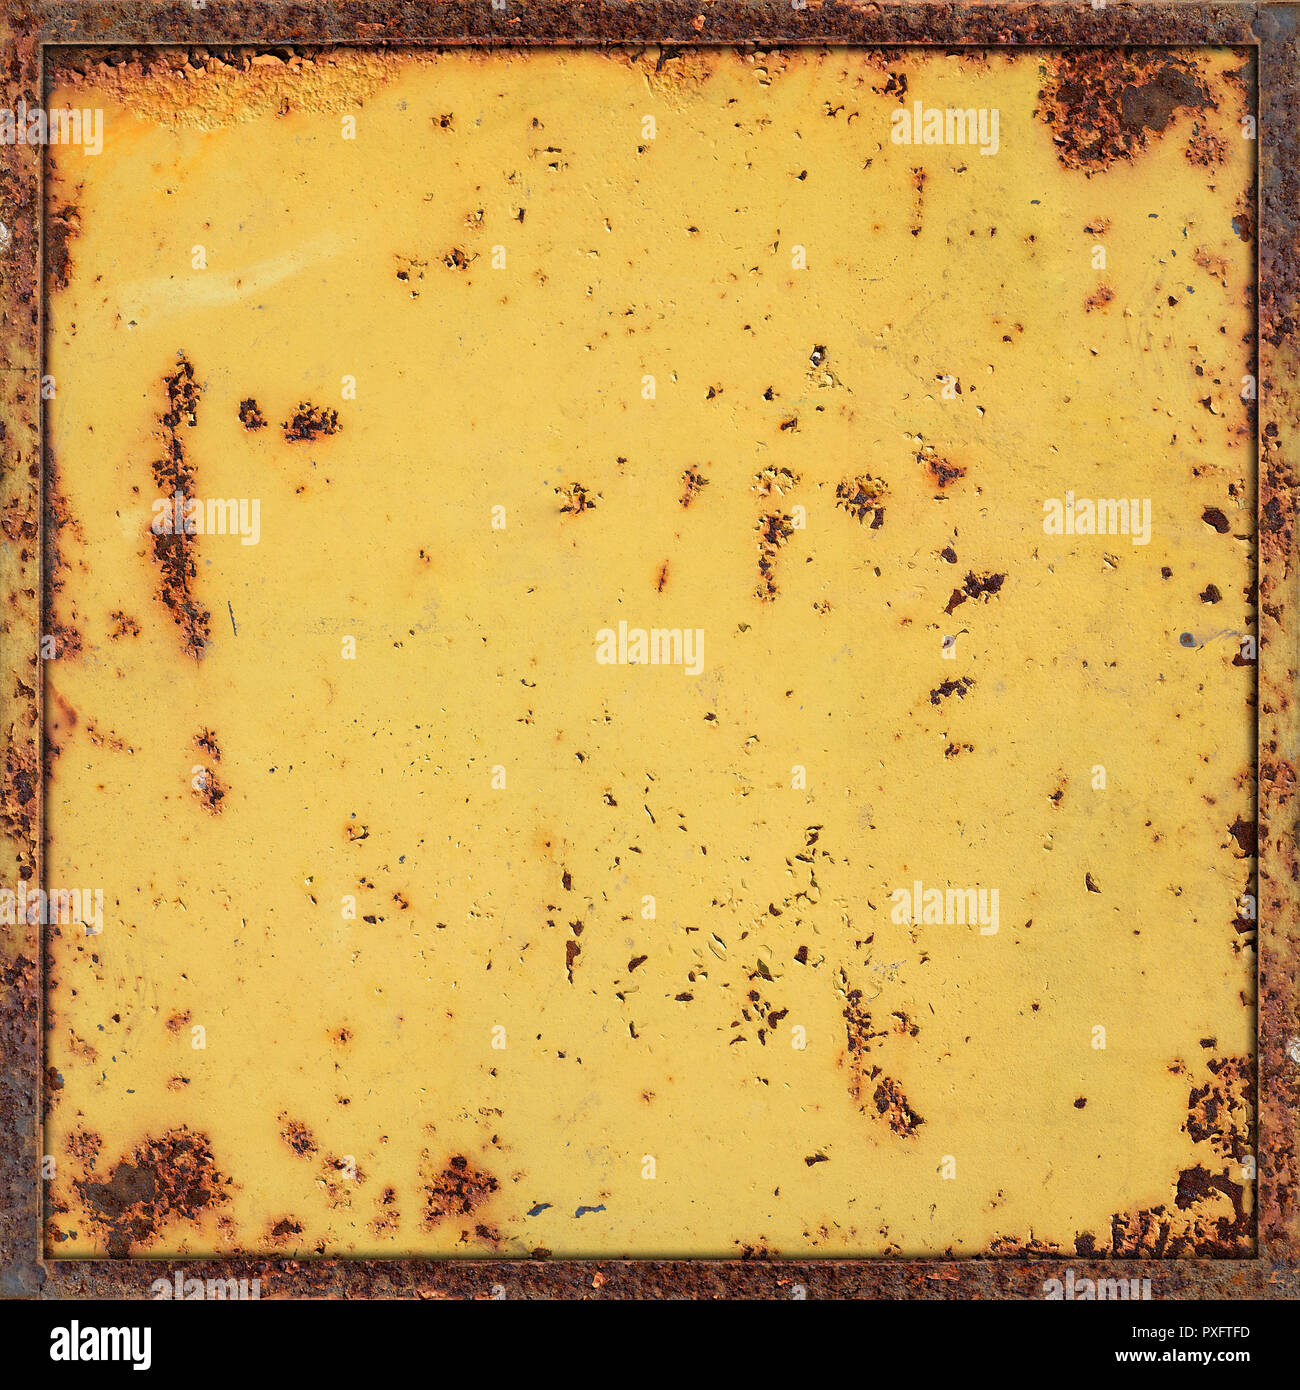 Old Damaged and Weathered Metal or Steel Surfaces Painted by Yellow Color as Industrial Background - Stock Image